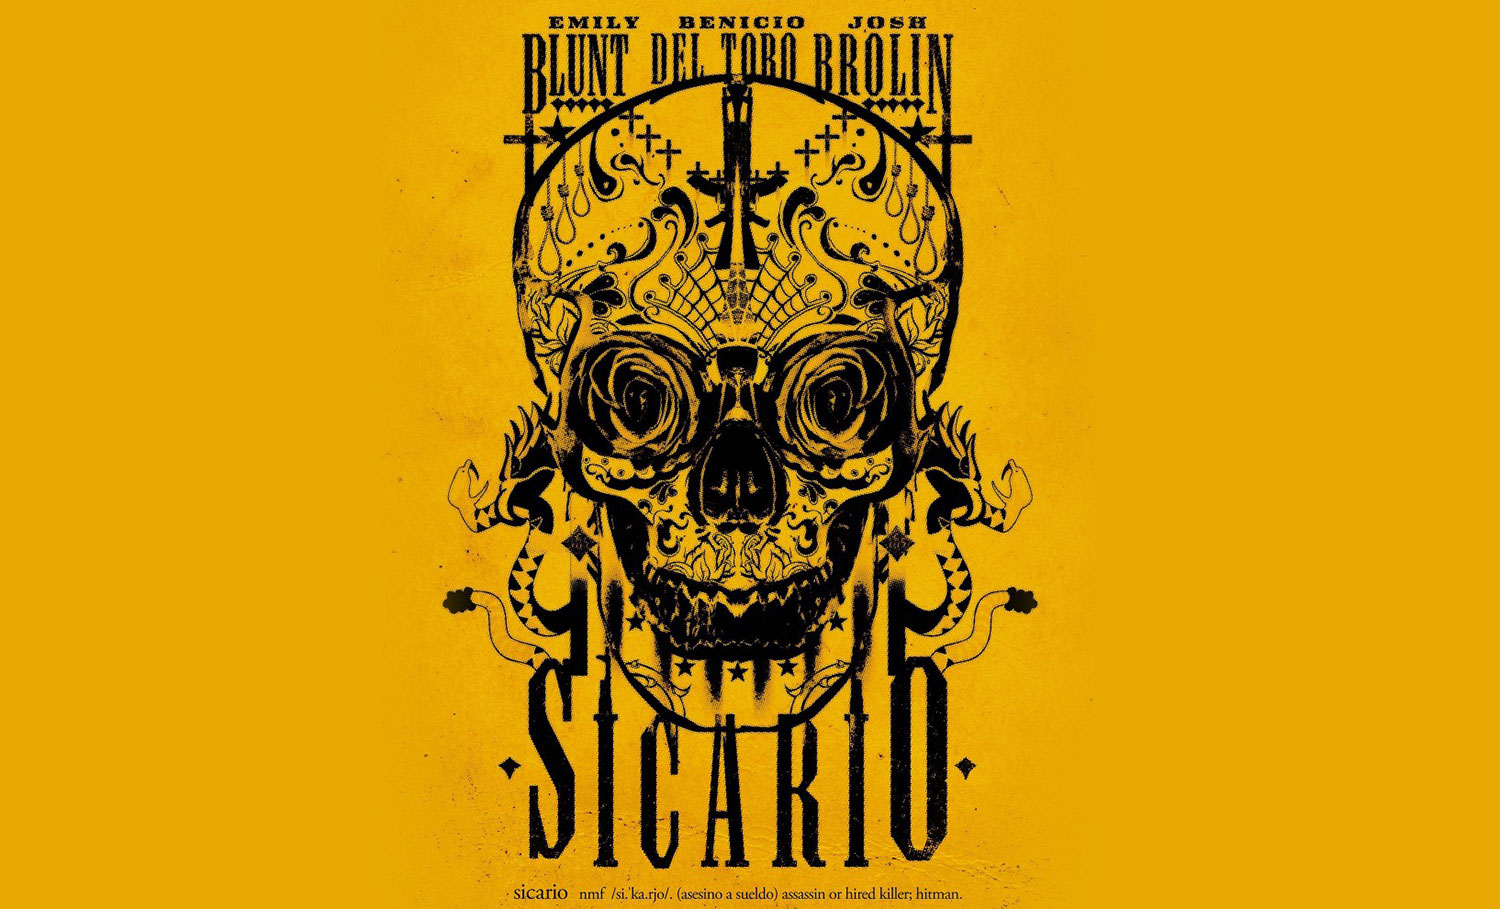 Sicario movie yellow poster